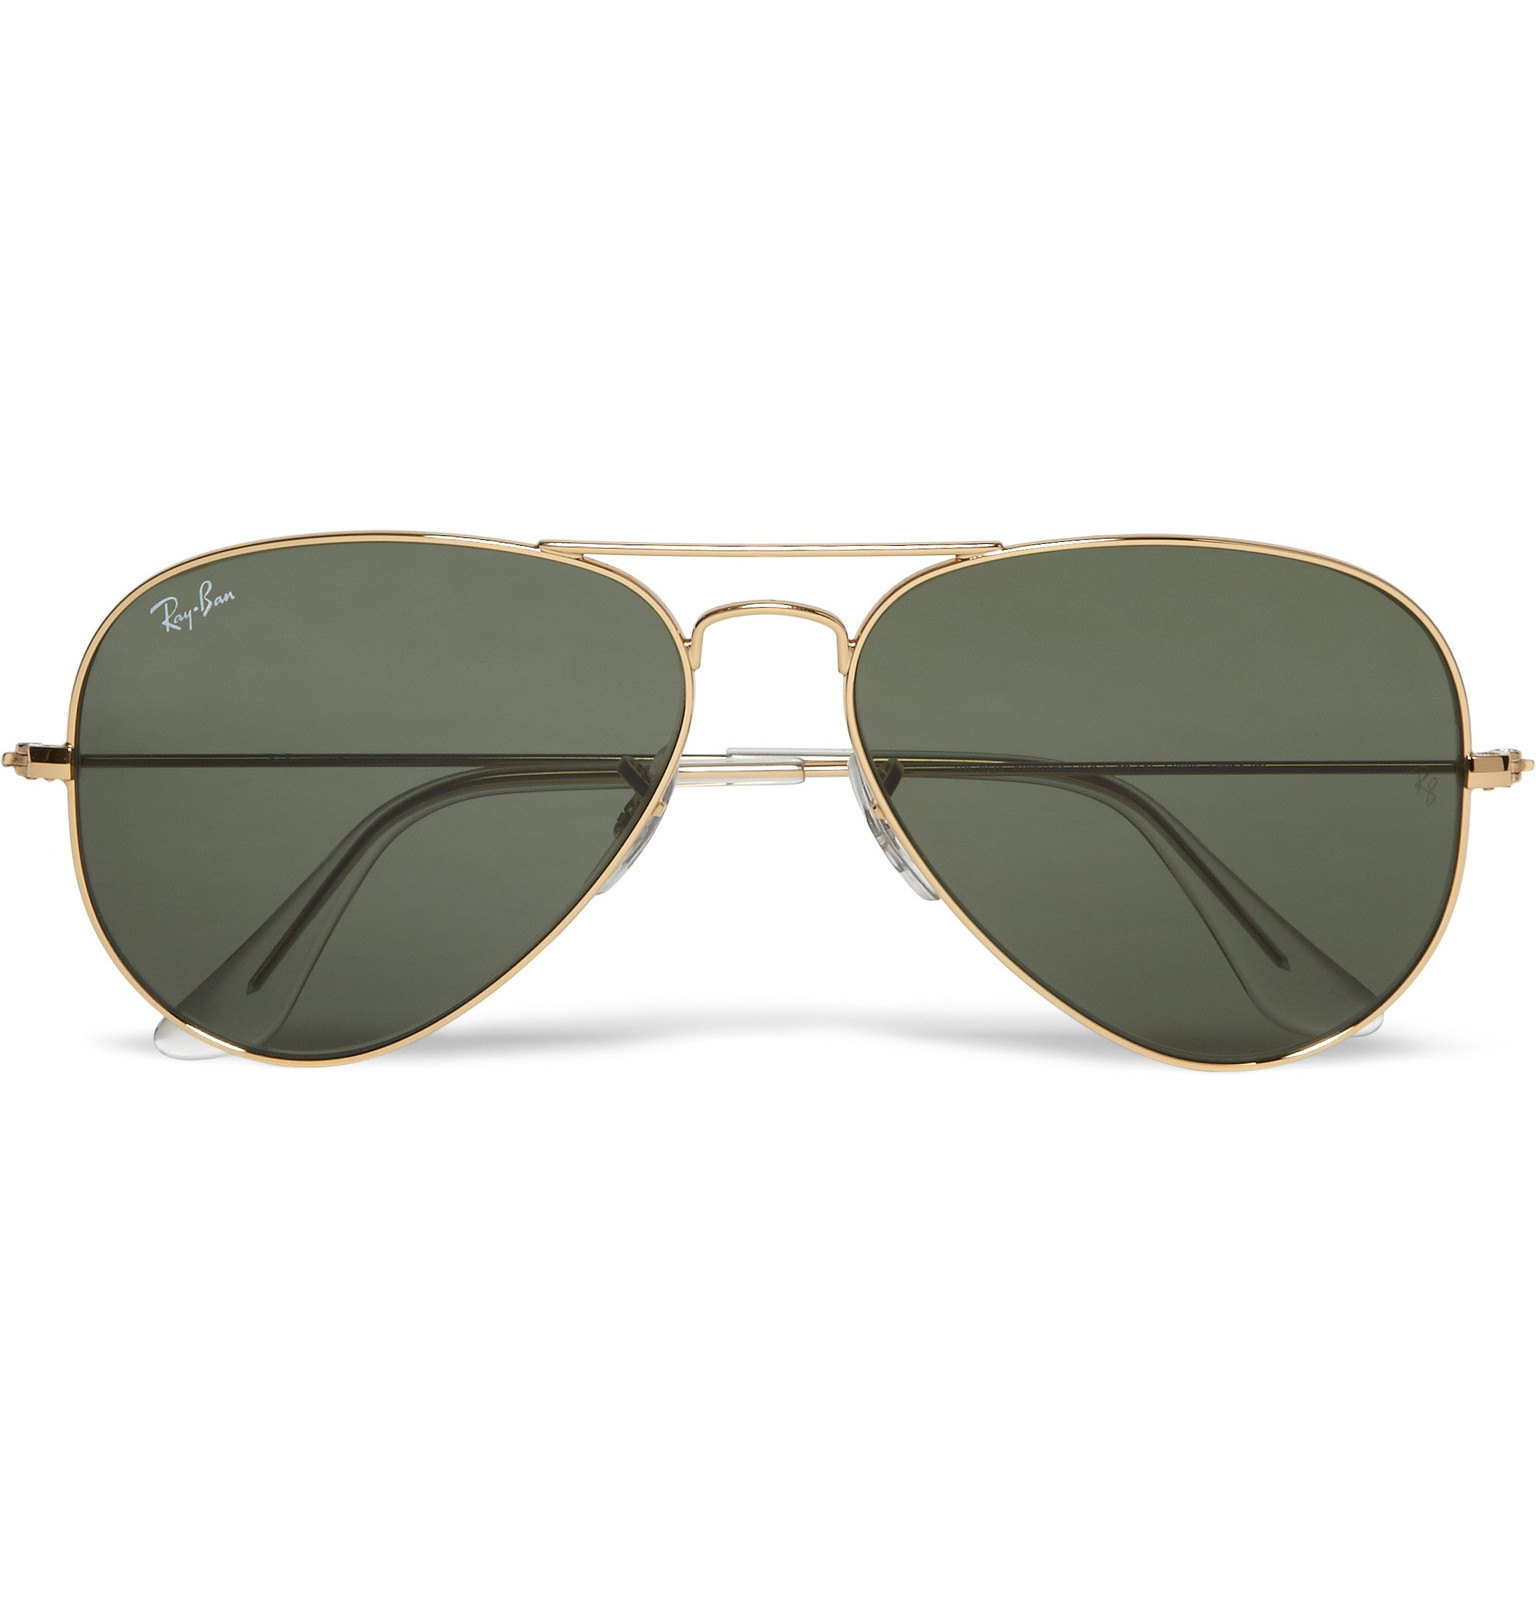 Ray Ban Metal Aviator Sunglasses  ray ban aviator gold tone sunglasses